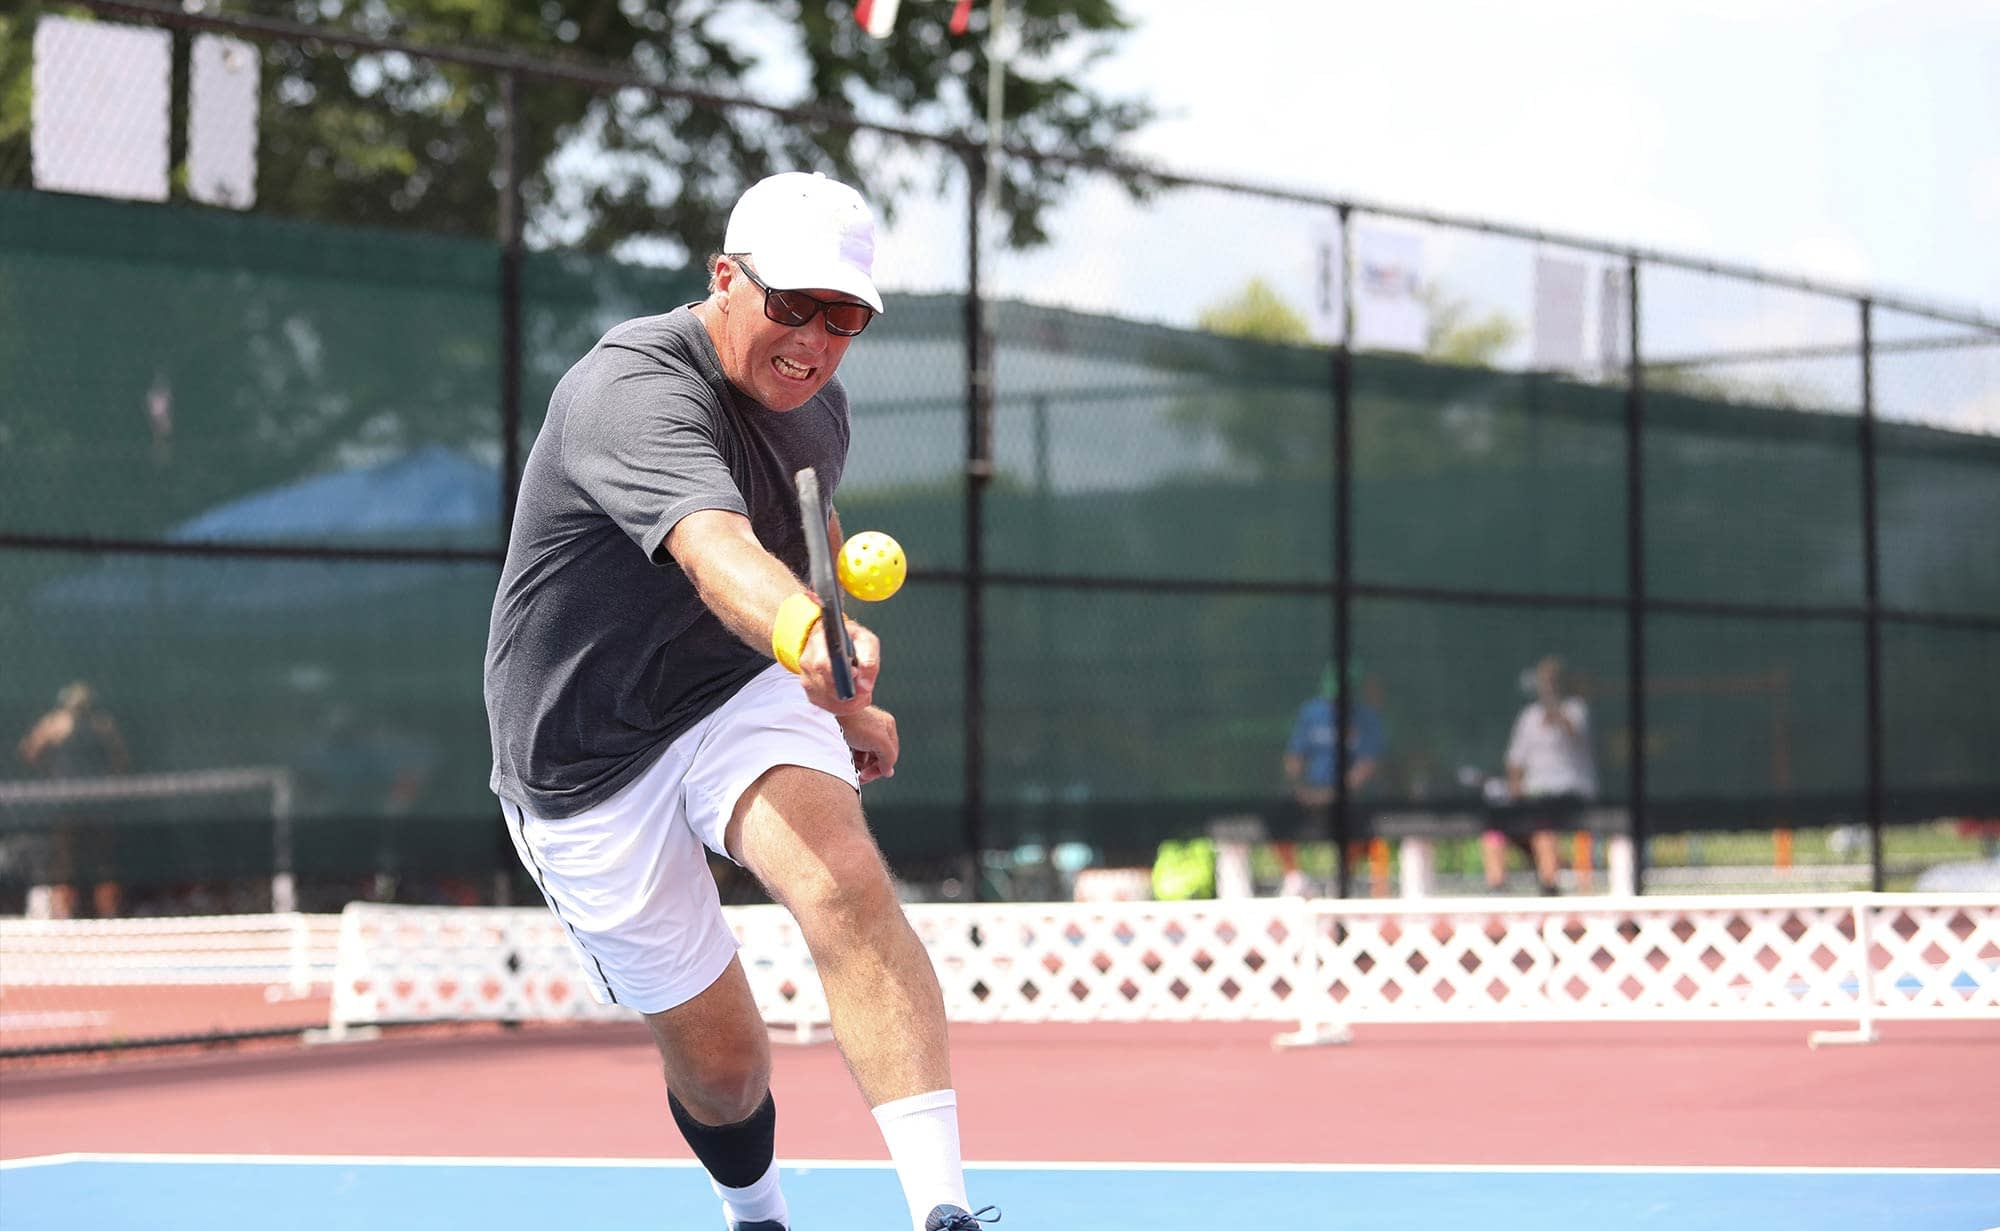 Pickleball – Is This Lawn Bowling 2.0?